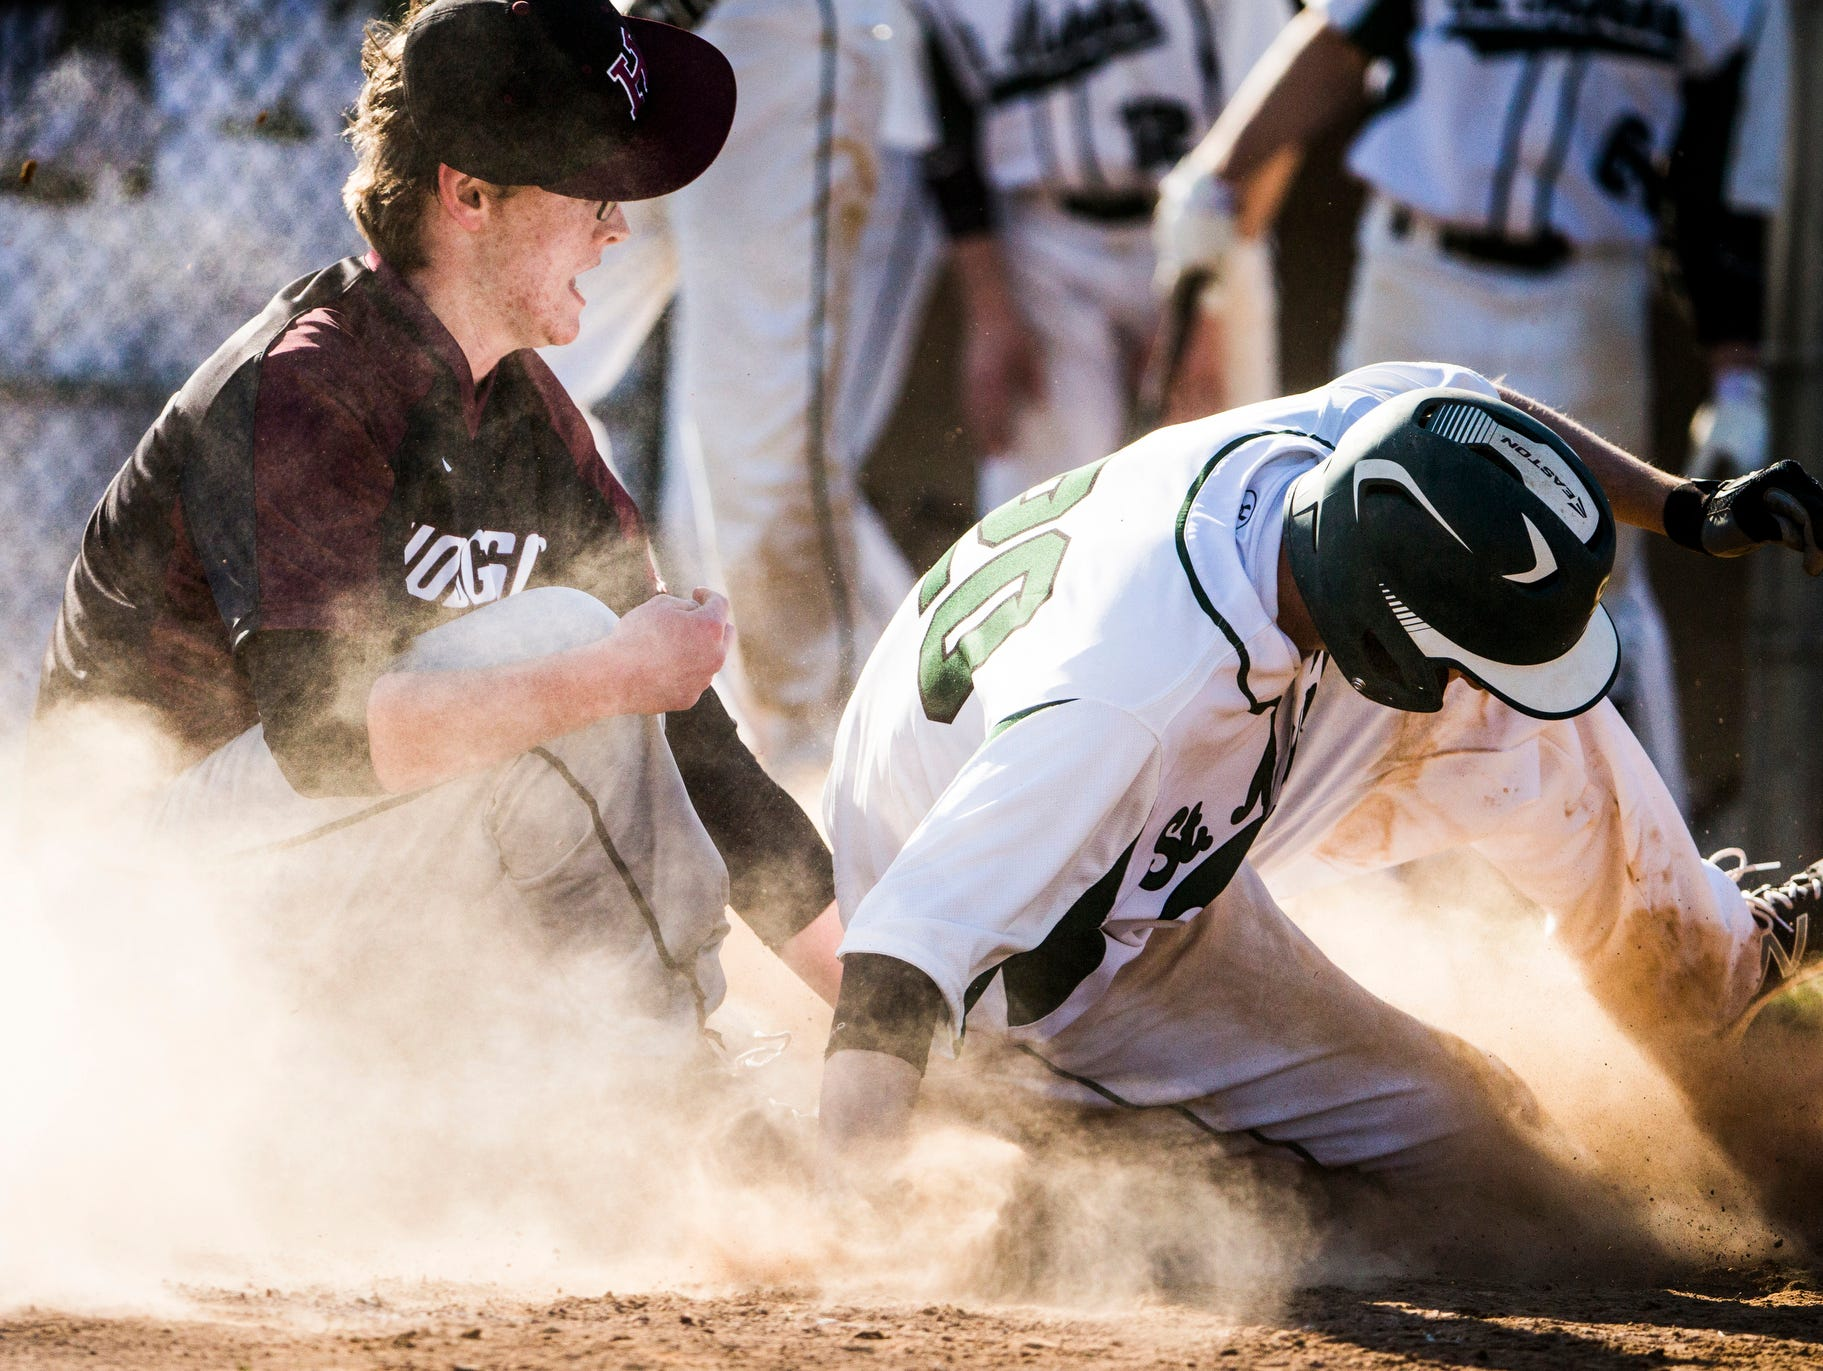 St. Mark's Christopher Ludman slides safely into home as Hodgson pitcher Daniel Brown tries to tag him out in a cloud of dust in St. Mark's 12-0 win over Hodgson at St. Mark's High School on Wednesday afternoon.